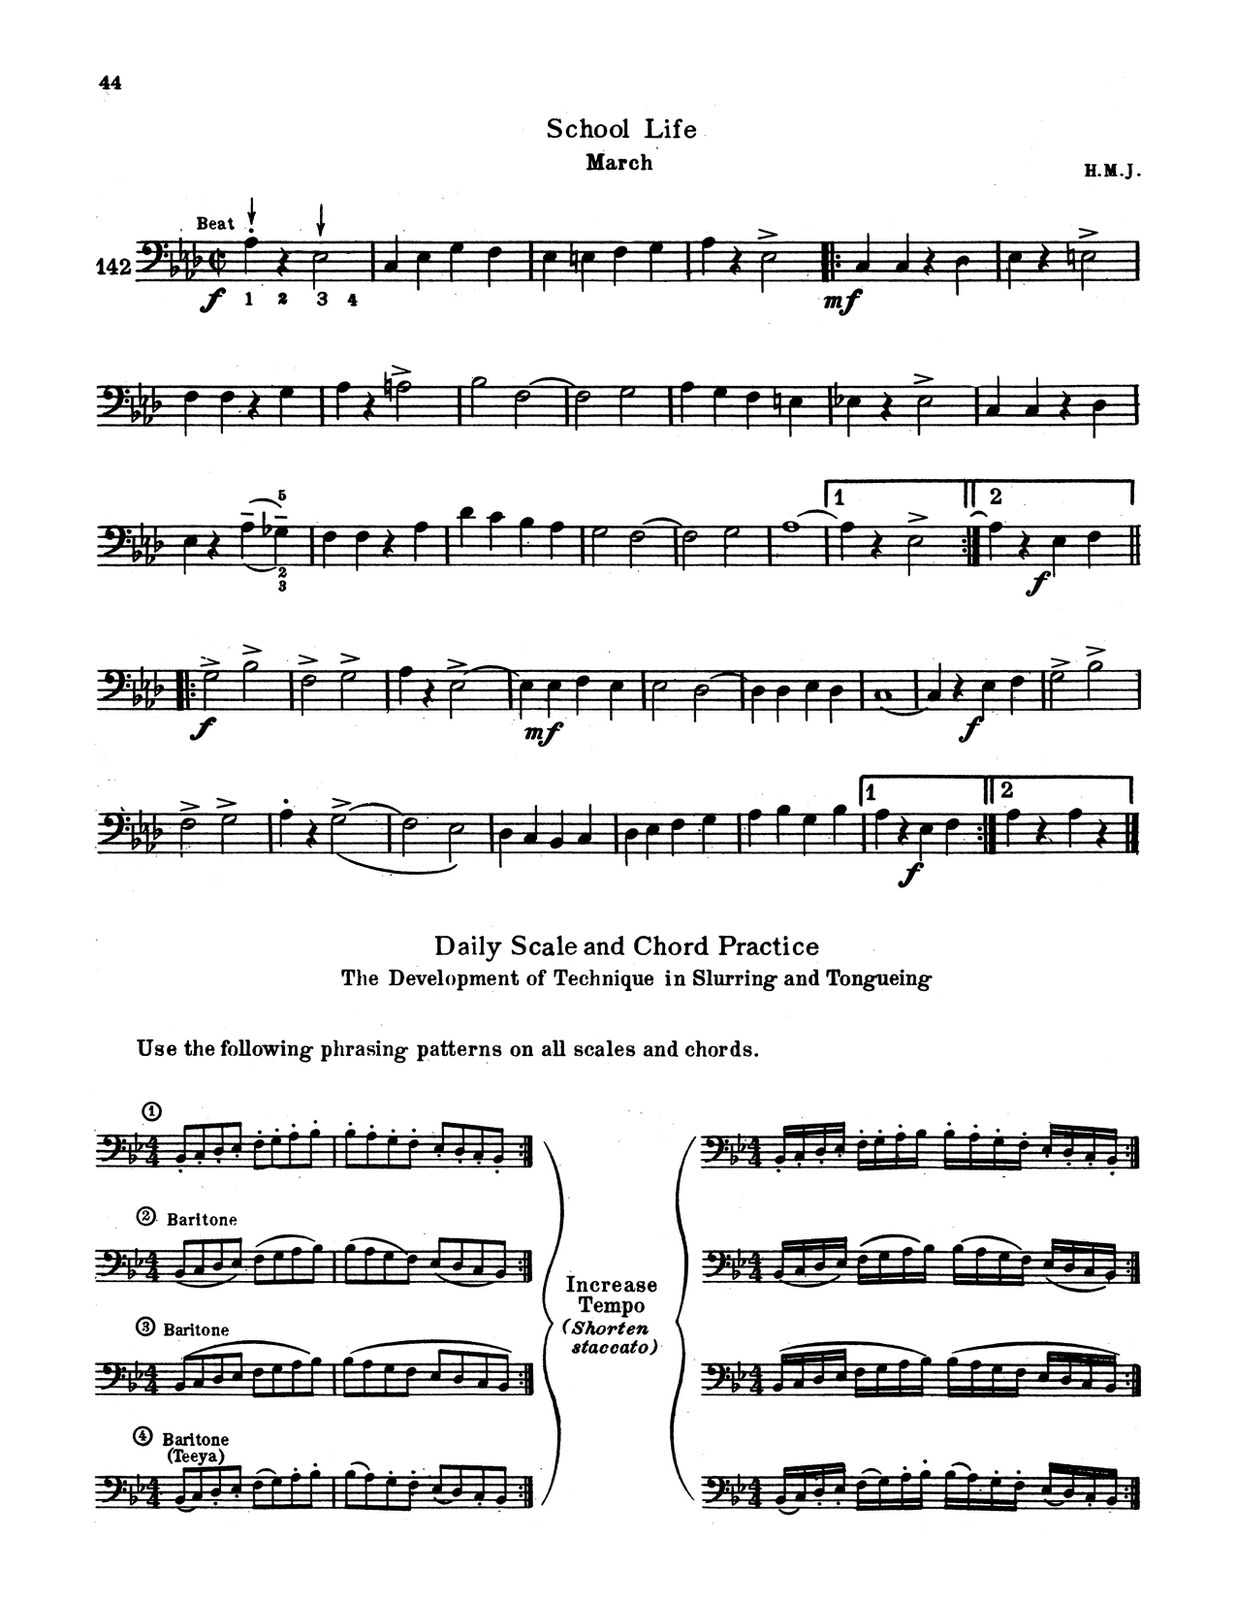 Johnson, Harold M., Aeolian Method for Trombone-p44